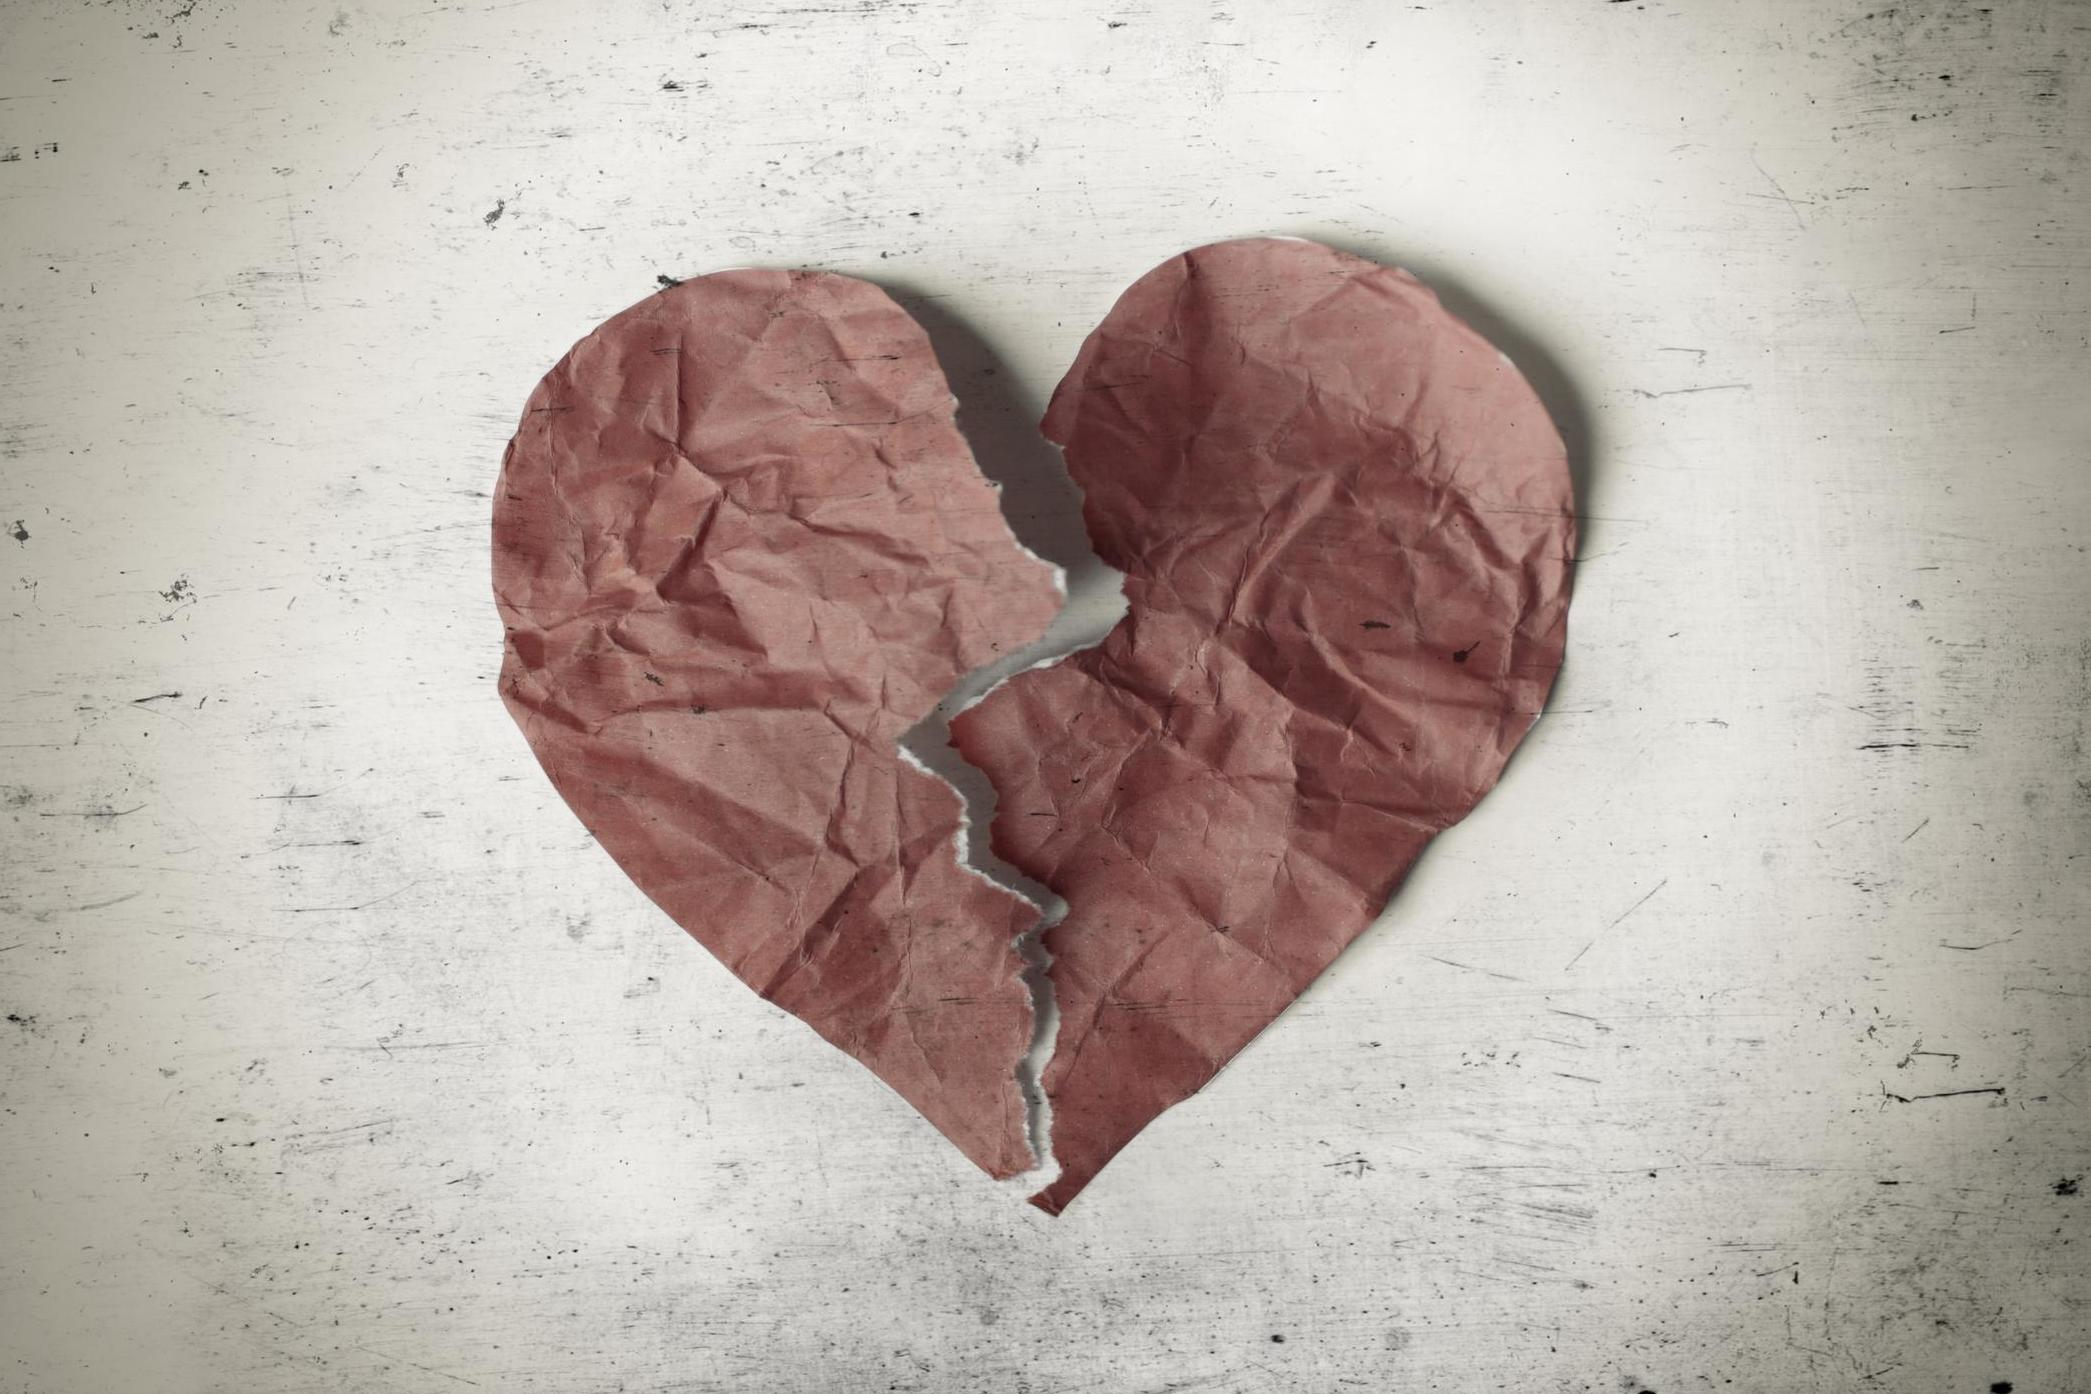 Broken Heart: Broken Heart Can Cause Same Type Of Long-lasting Damage As